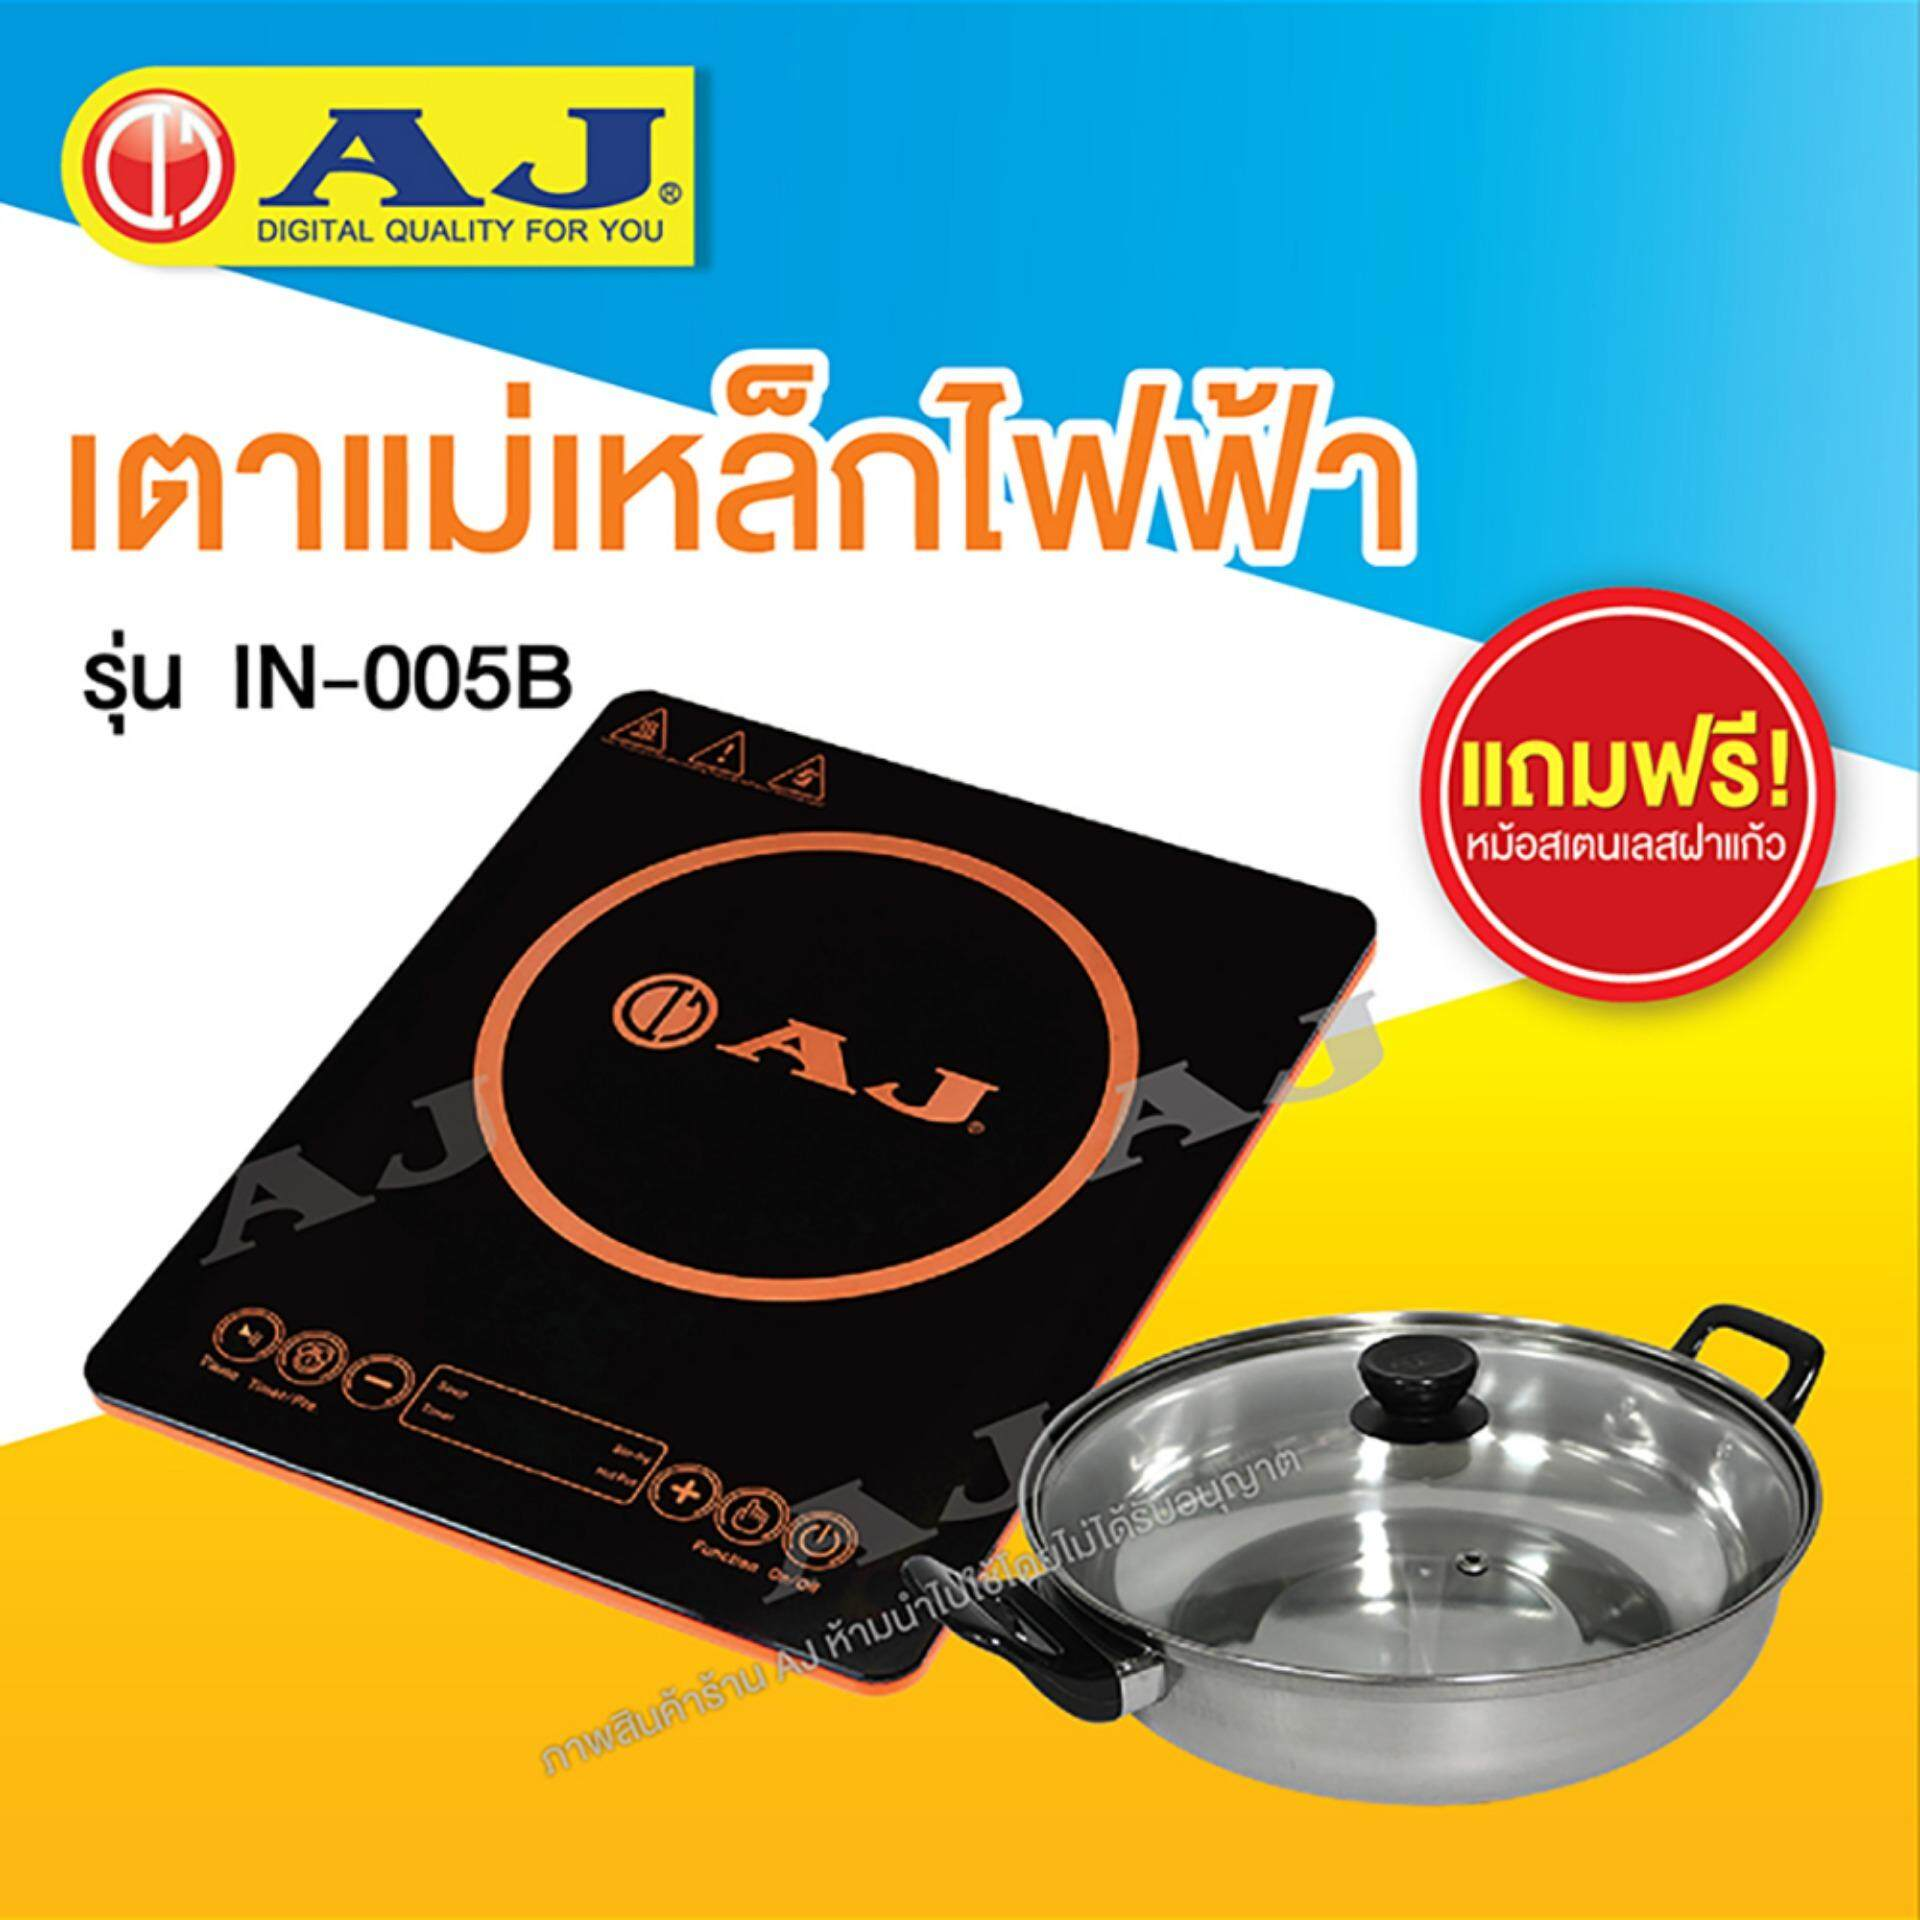 AJ เตาแม่เหล็กไฟฟ้า IN-005B  - f28acf8fcc3cf5f48bbd2092e516b156 - induction cooker schematic circuit diagram วงจรเตาแม่เหล็กไฟฟ้า